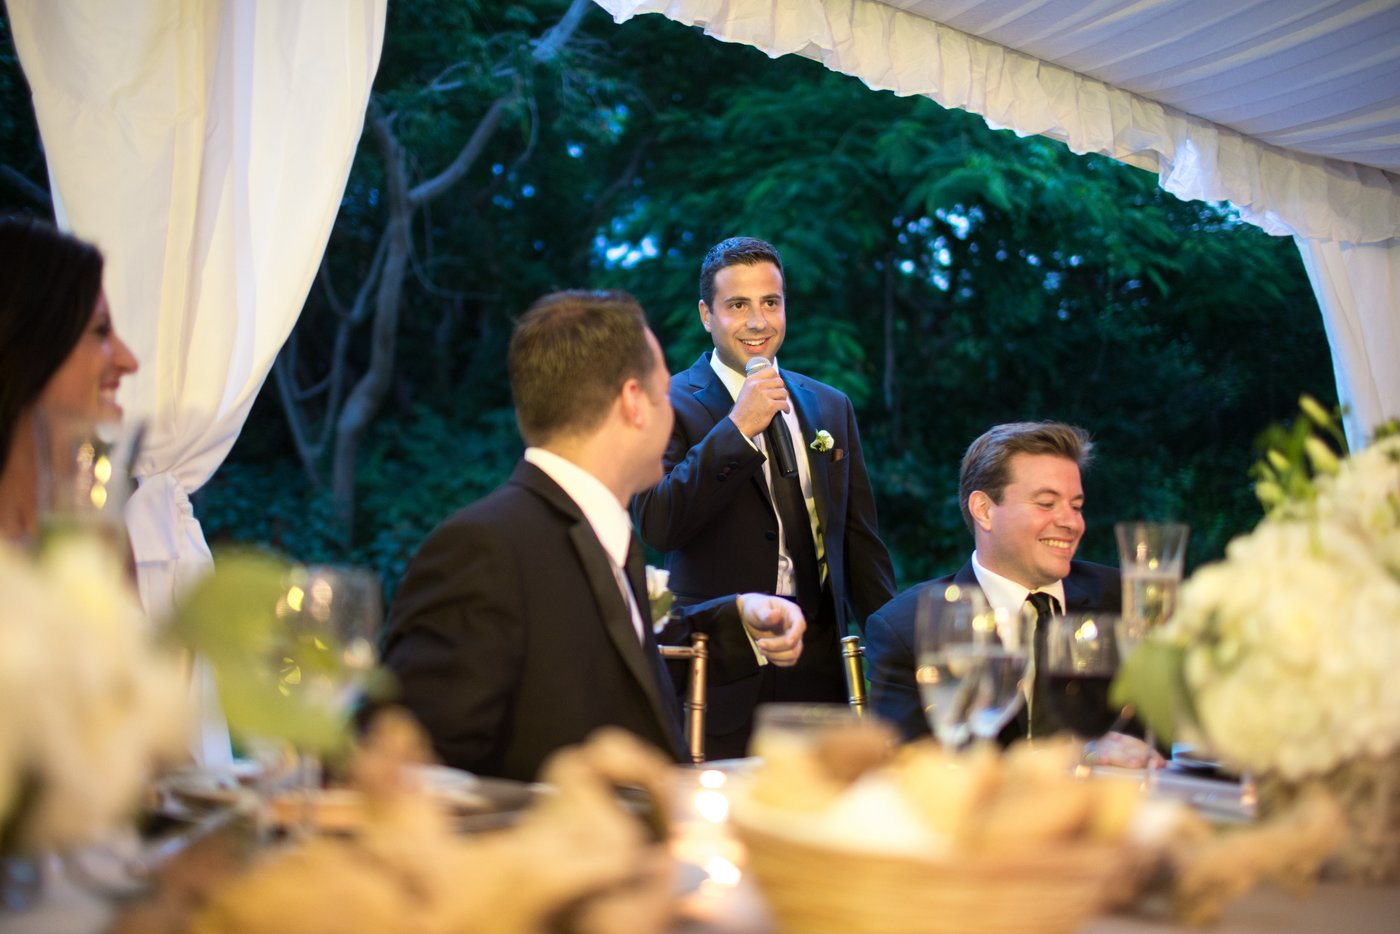 evening weddings at deering estate